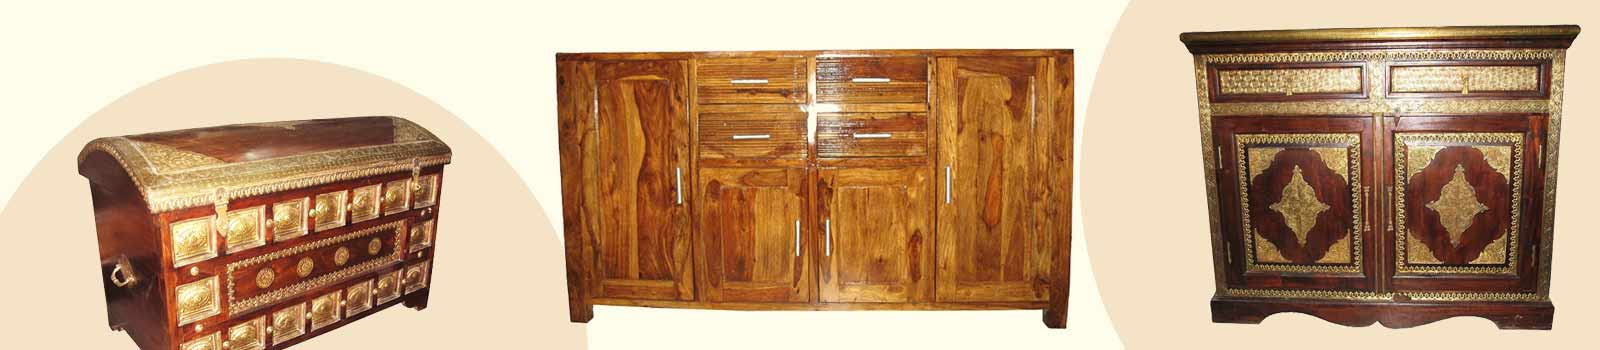 High Quality Beautiful Solid Wood Furniture